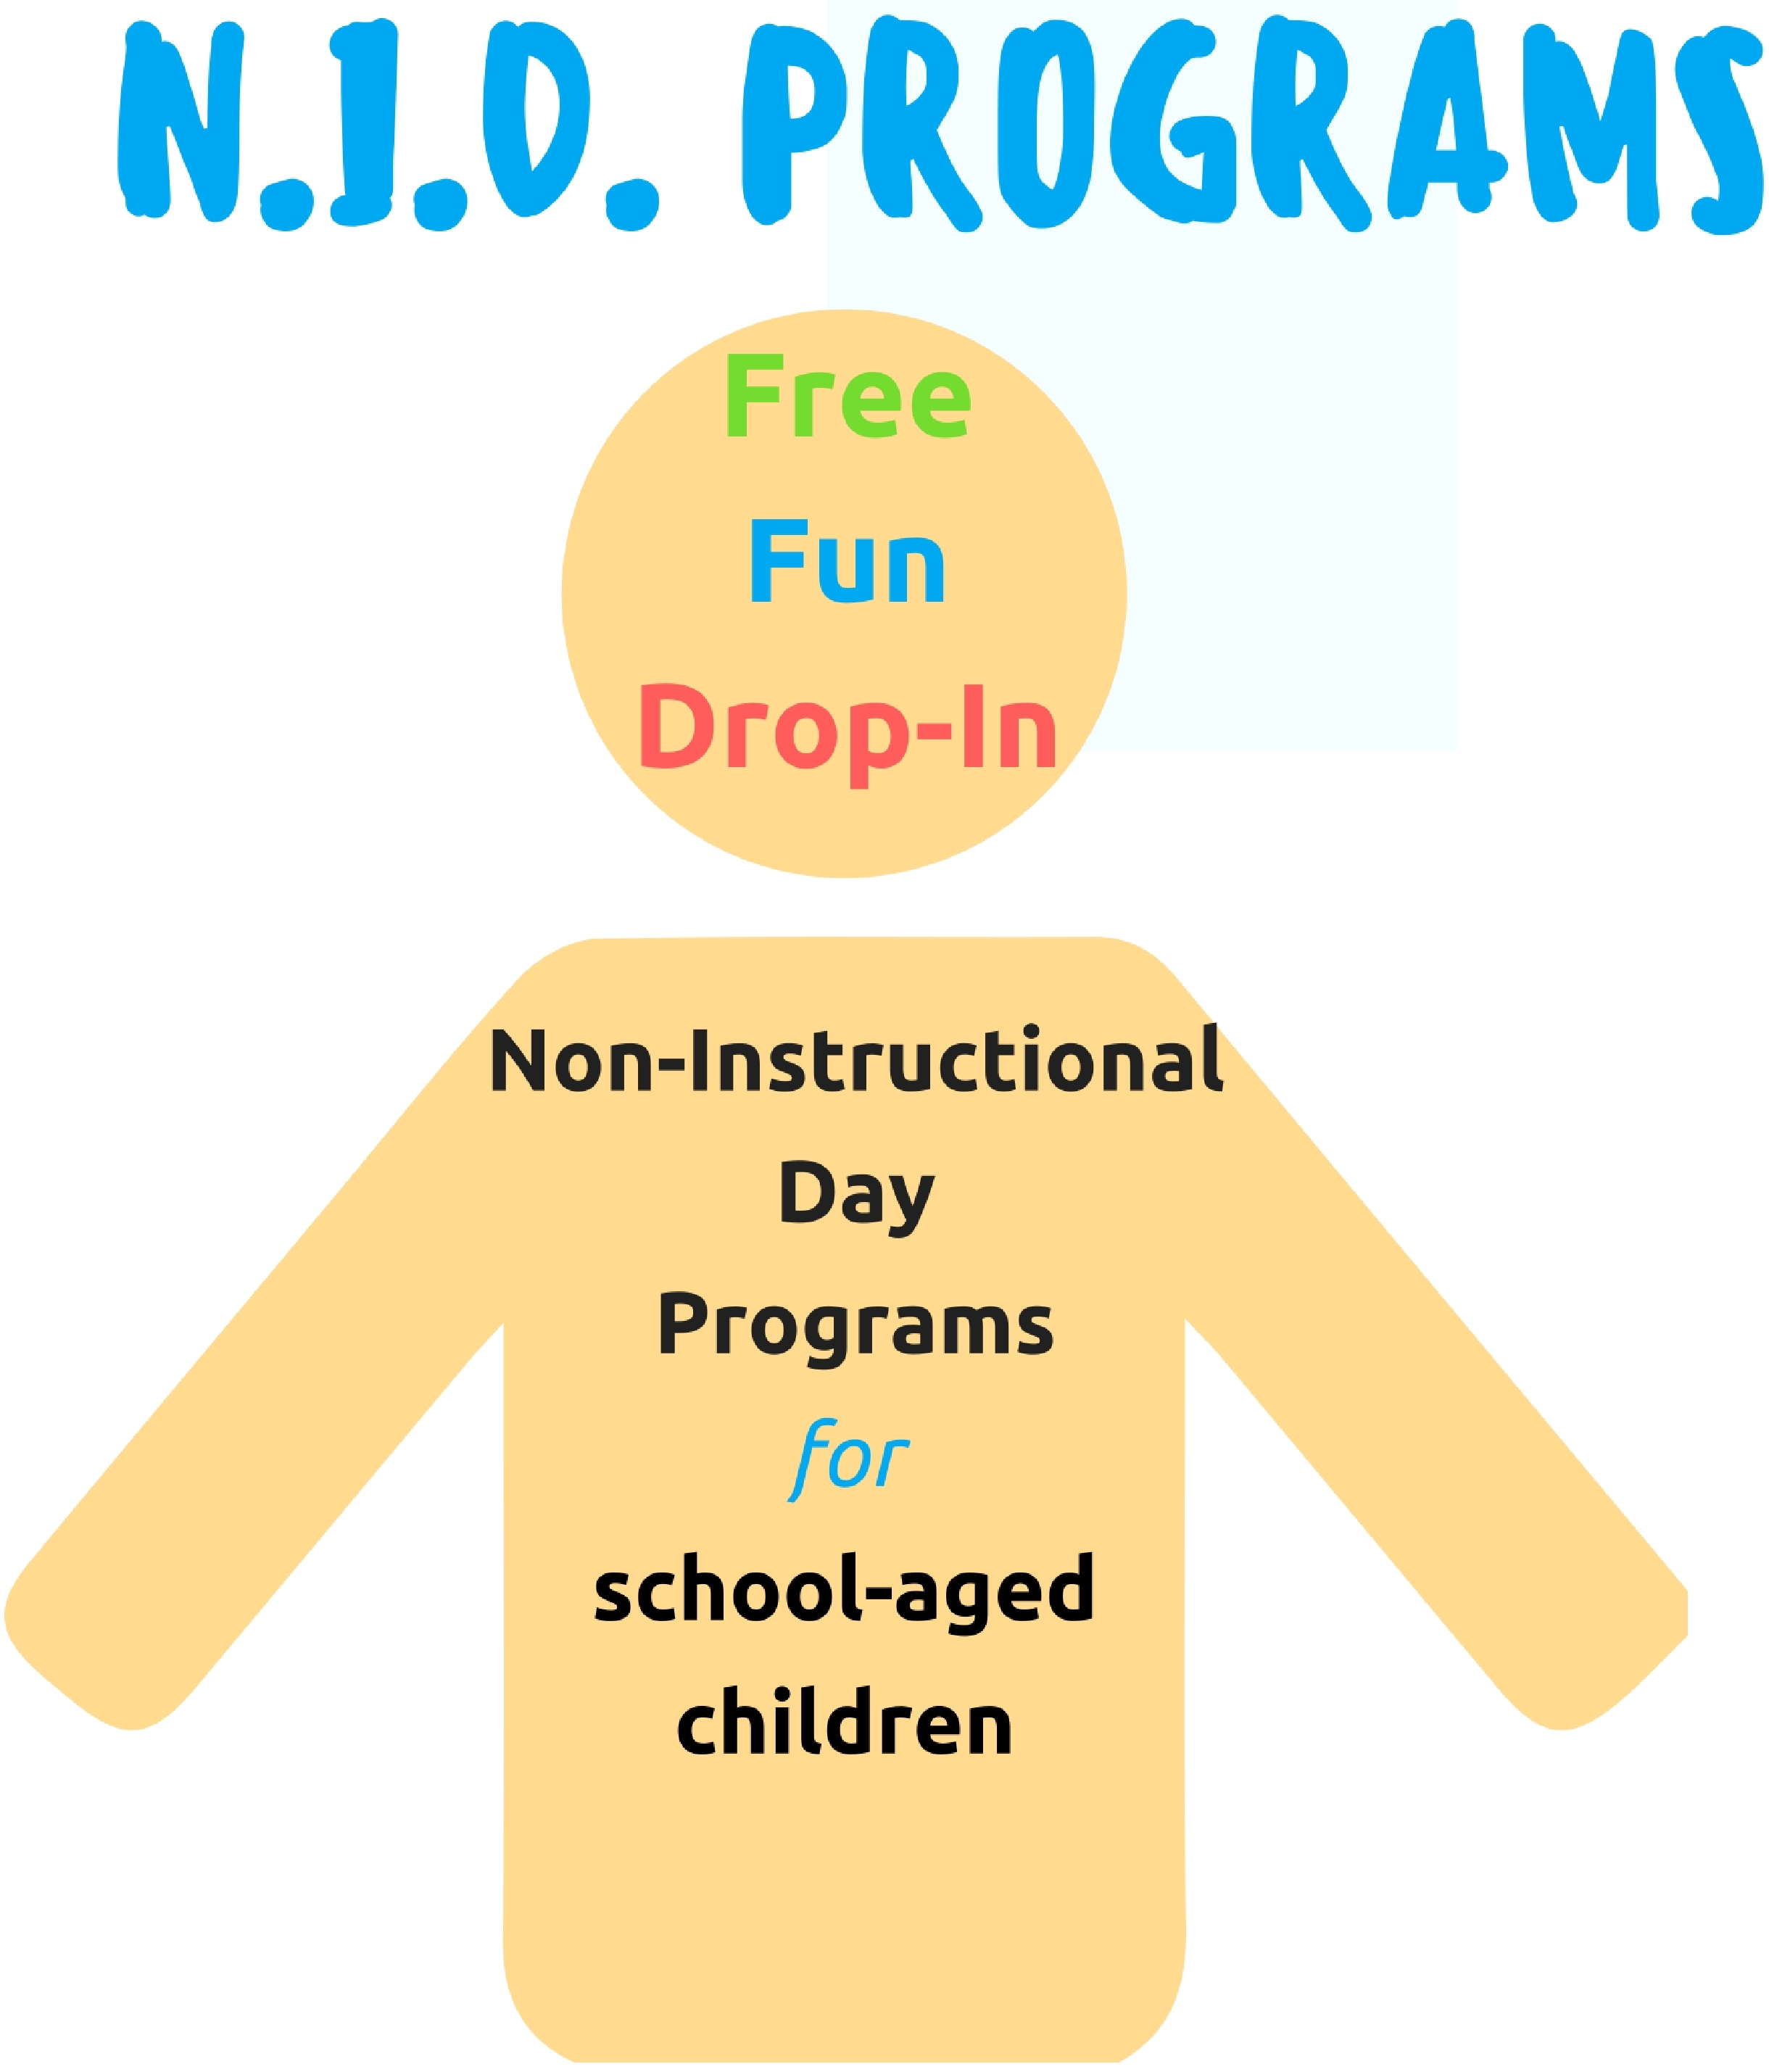 NID Programs @ Smithers Public Library